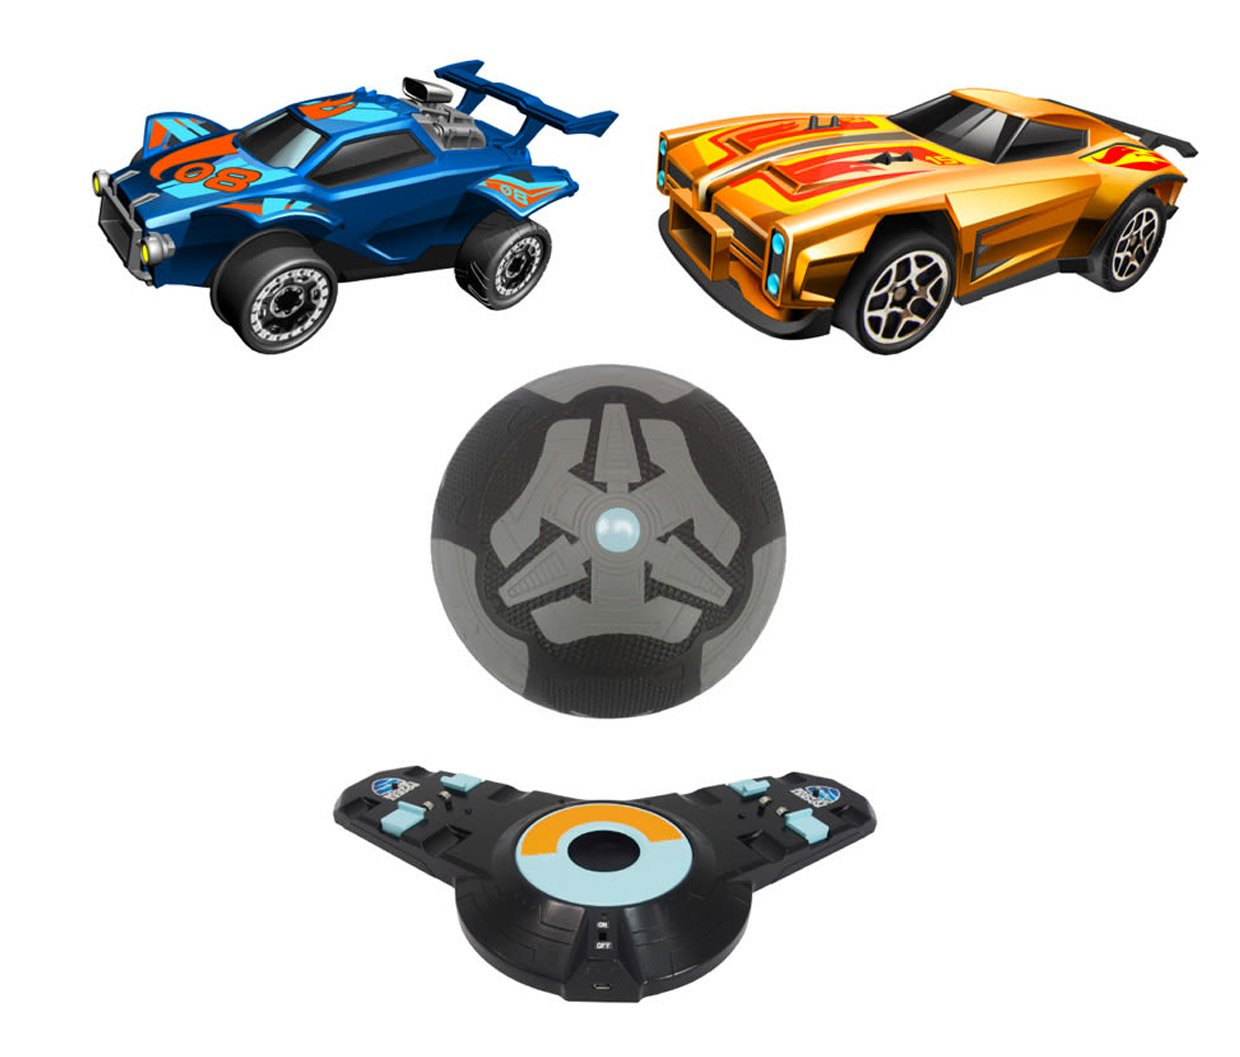 Rocket League RC Toy Set Launching From Psyonix and Hot Wheels Partnership